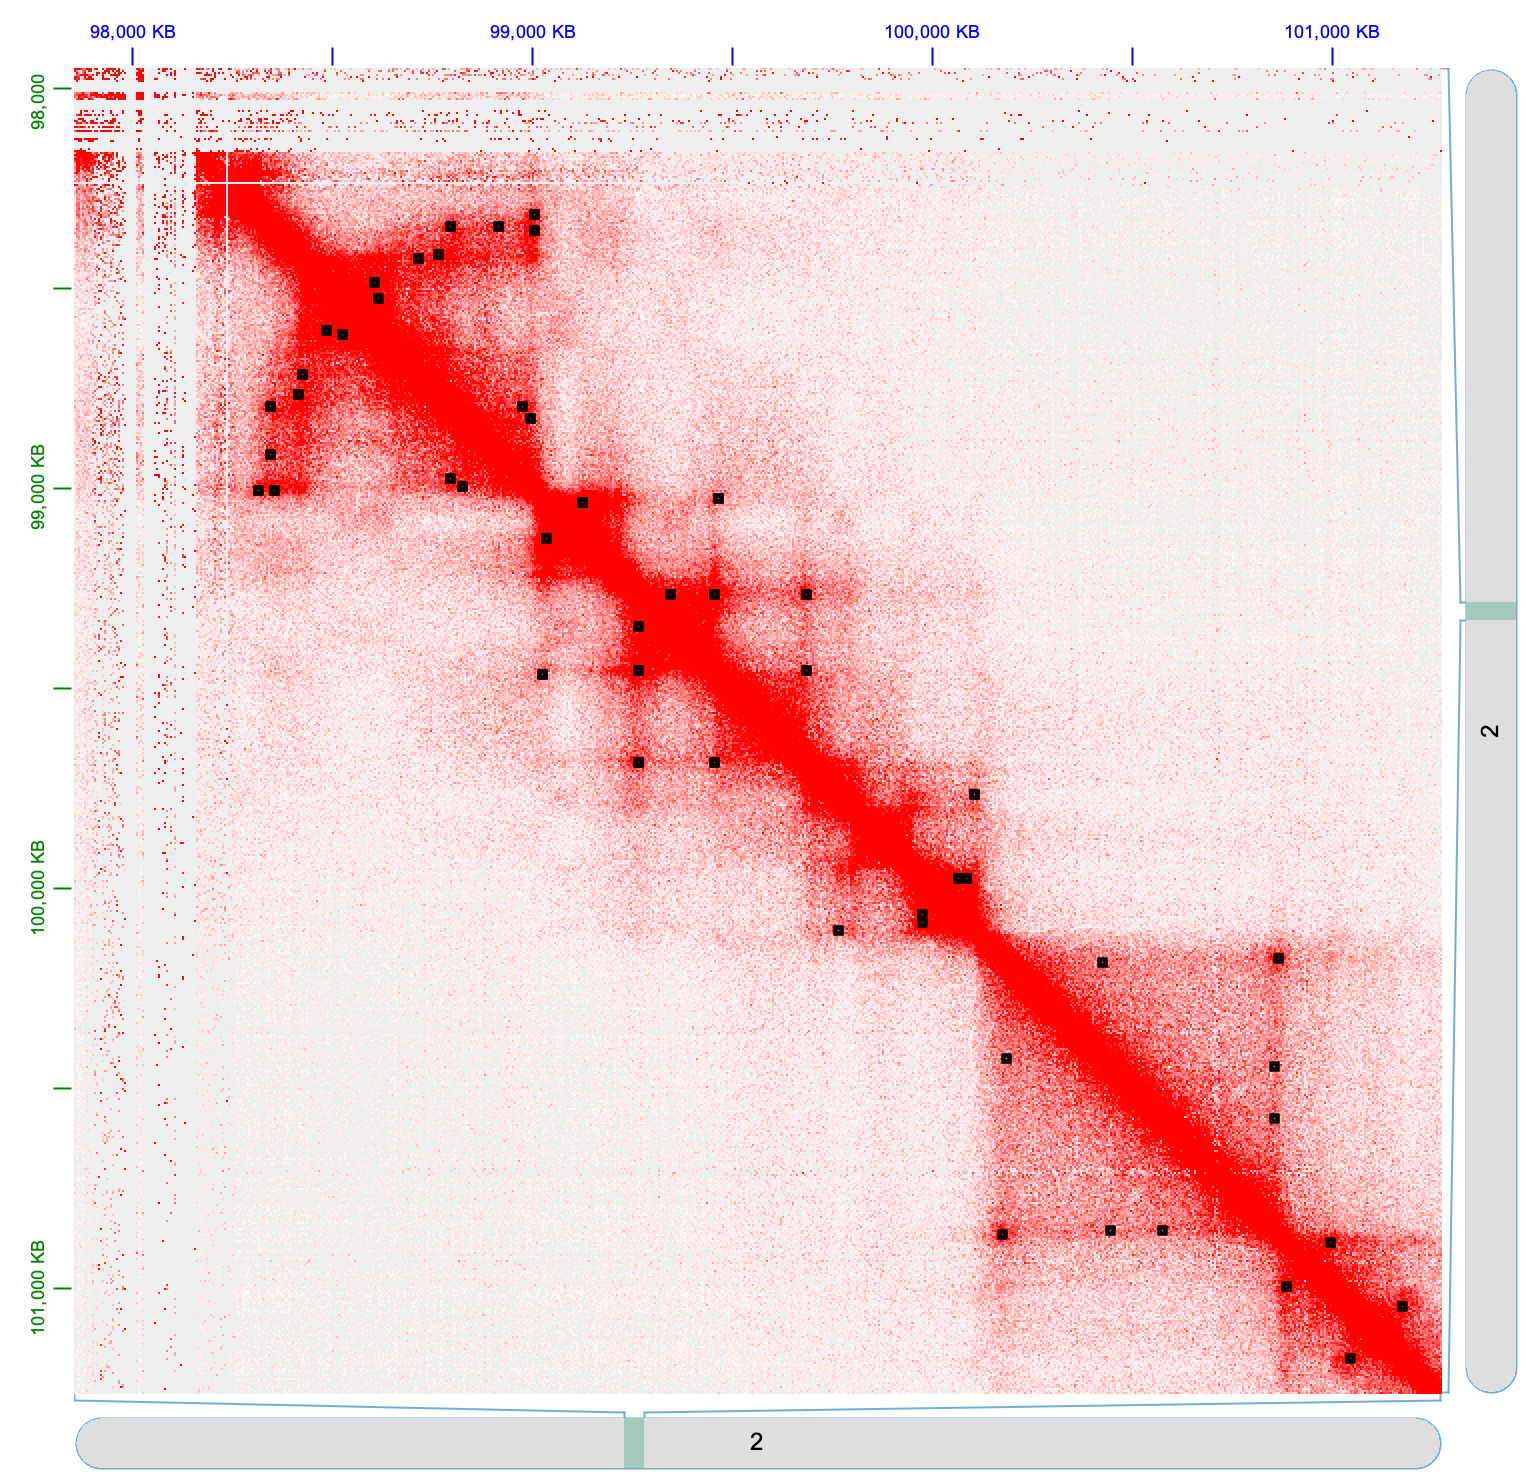 Predicted loops from model trained on H3K27ac HiChIP interactions